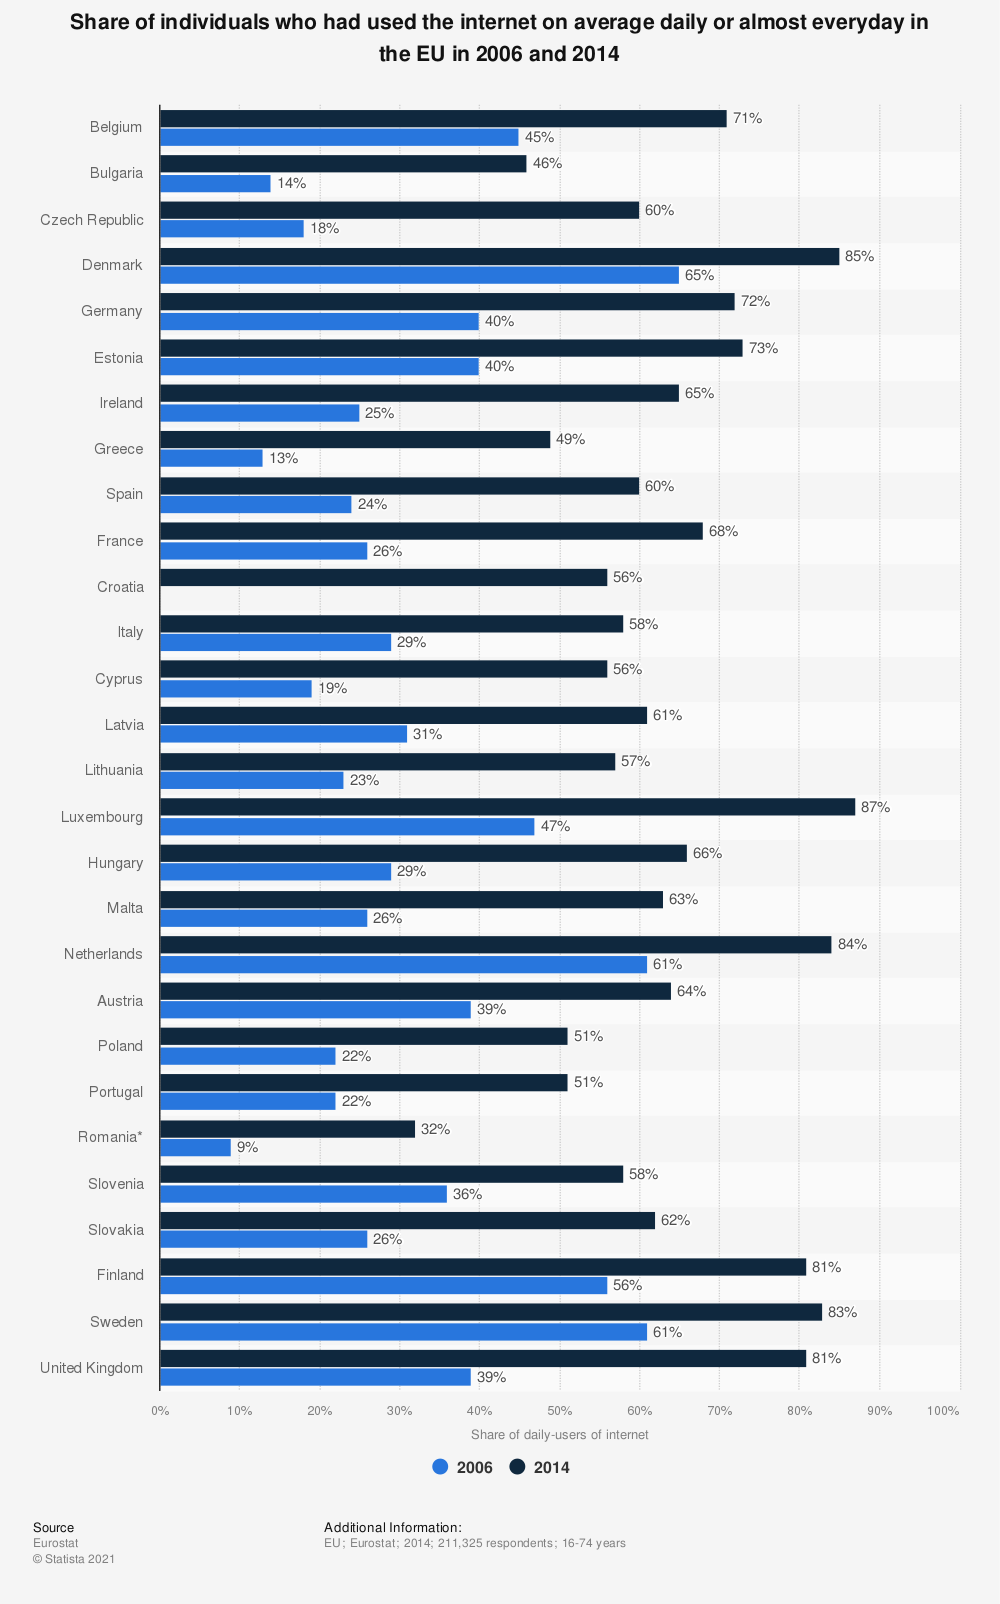 Statistic: Share of individuals who had used the internet on average daily or almost everyday in the EU in 2006 and 2014 | Statista